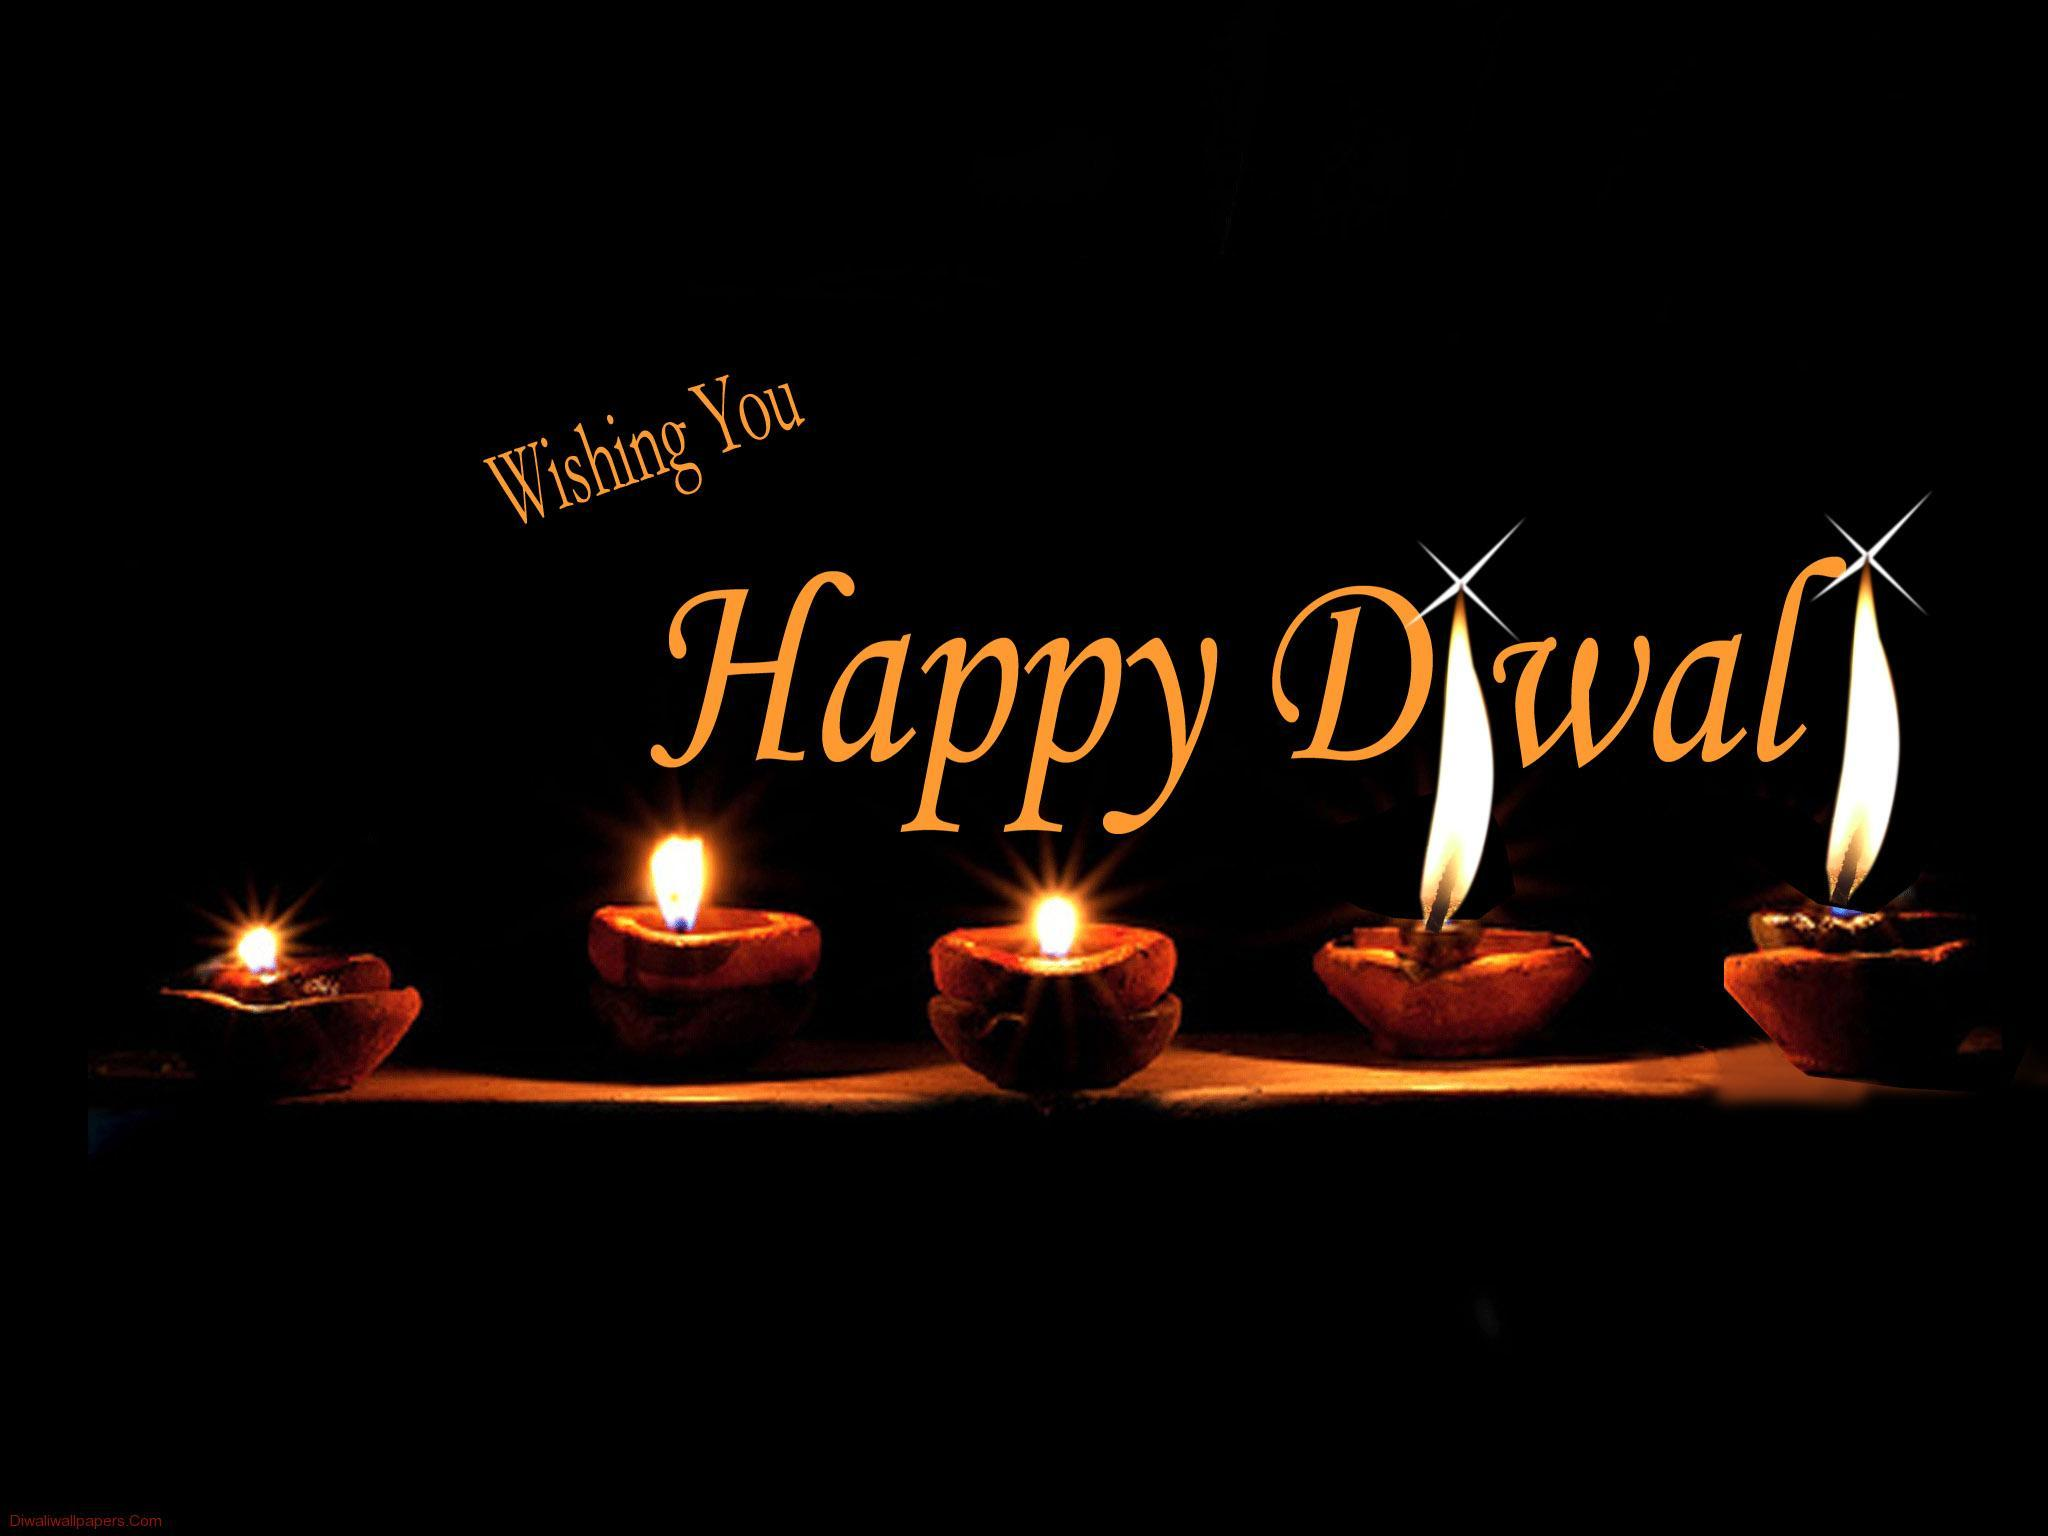 HD Happy Diwali Wallpapers